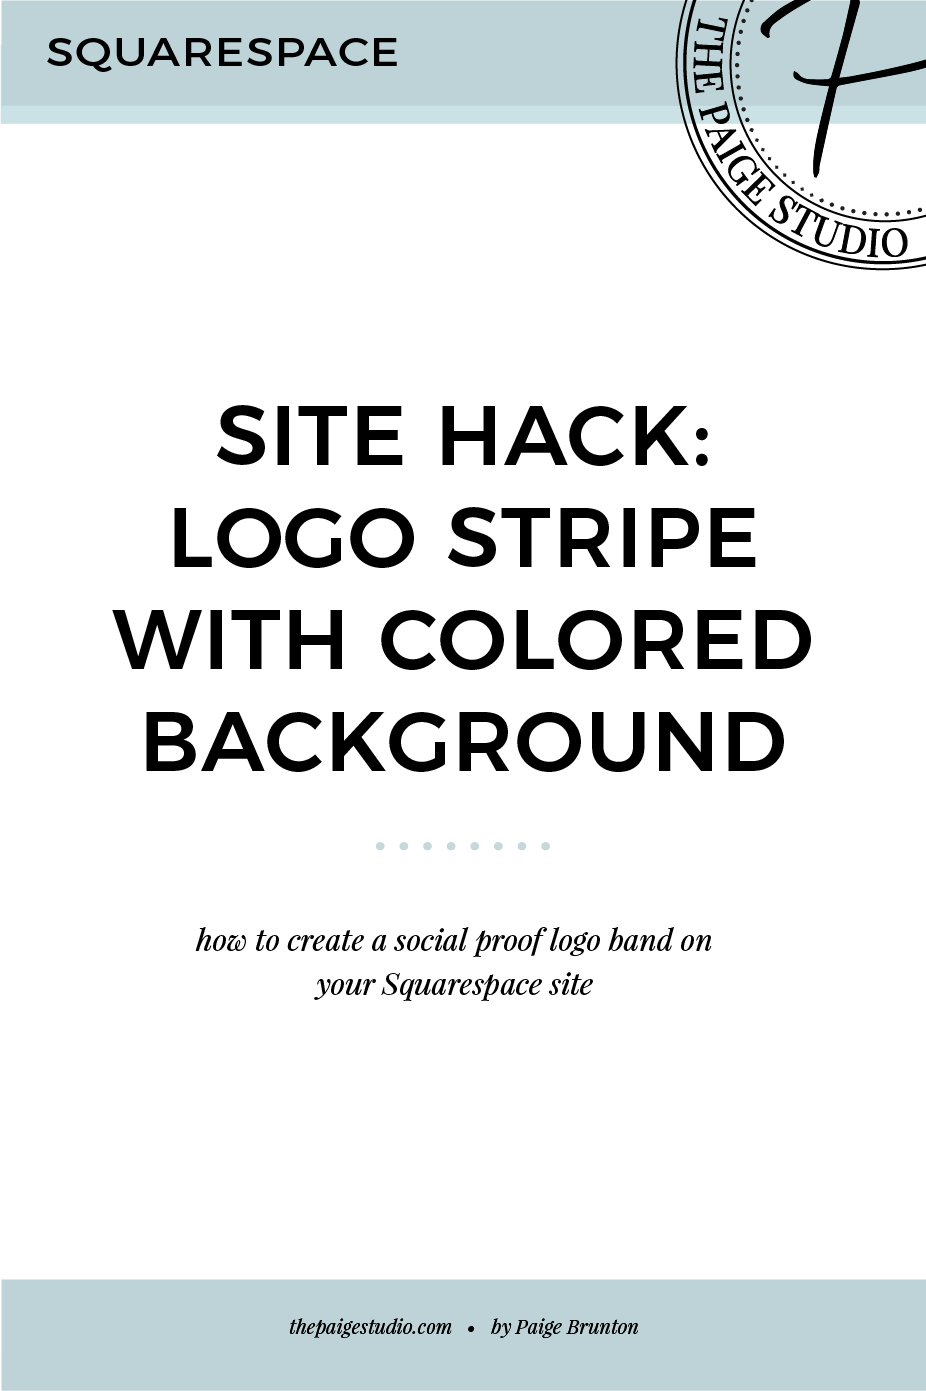 Squarespace hack: How to build a colored page section with rotating logos.png